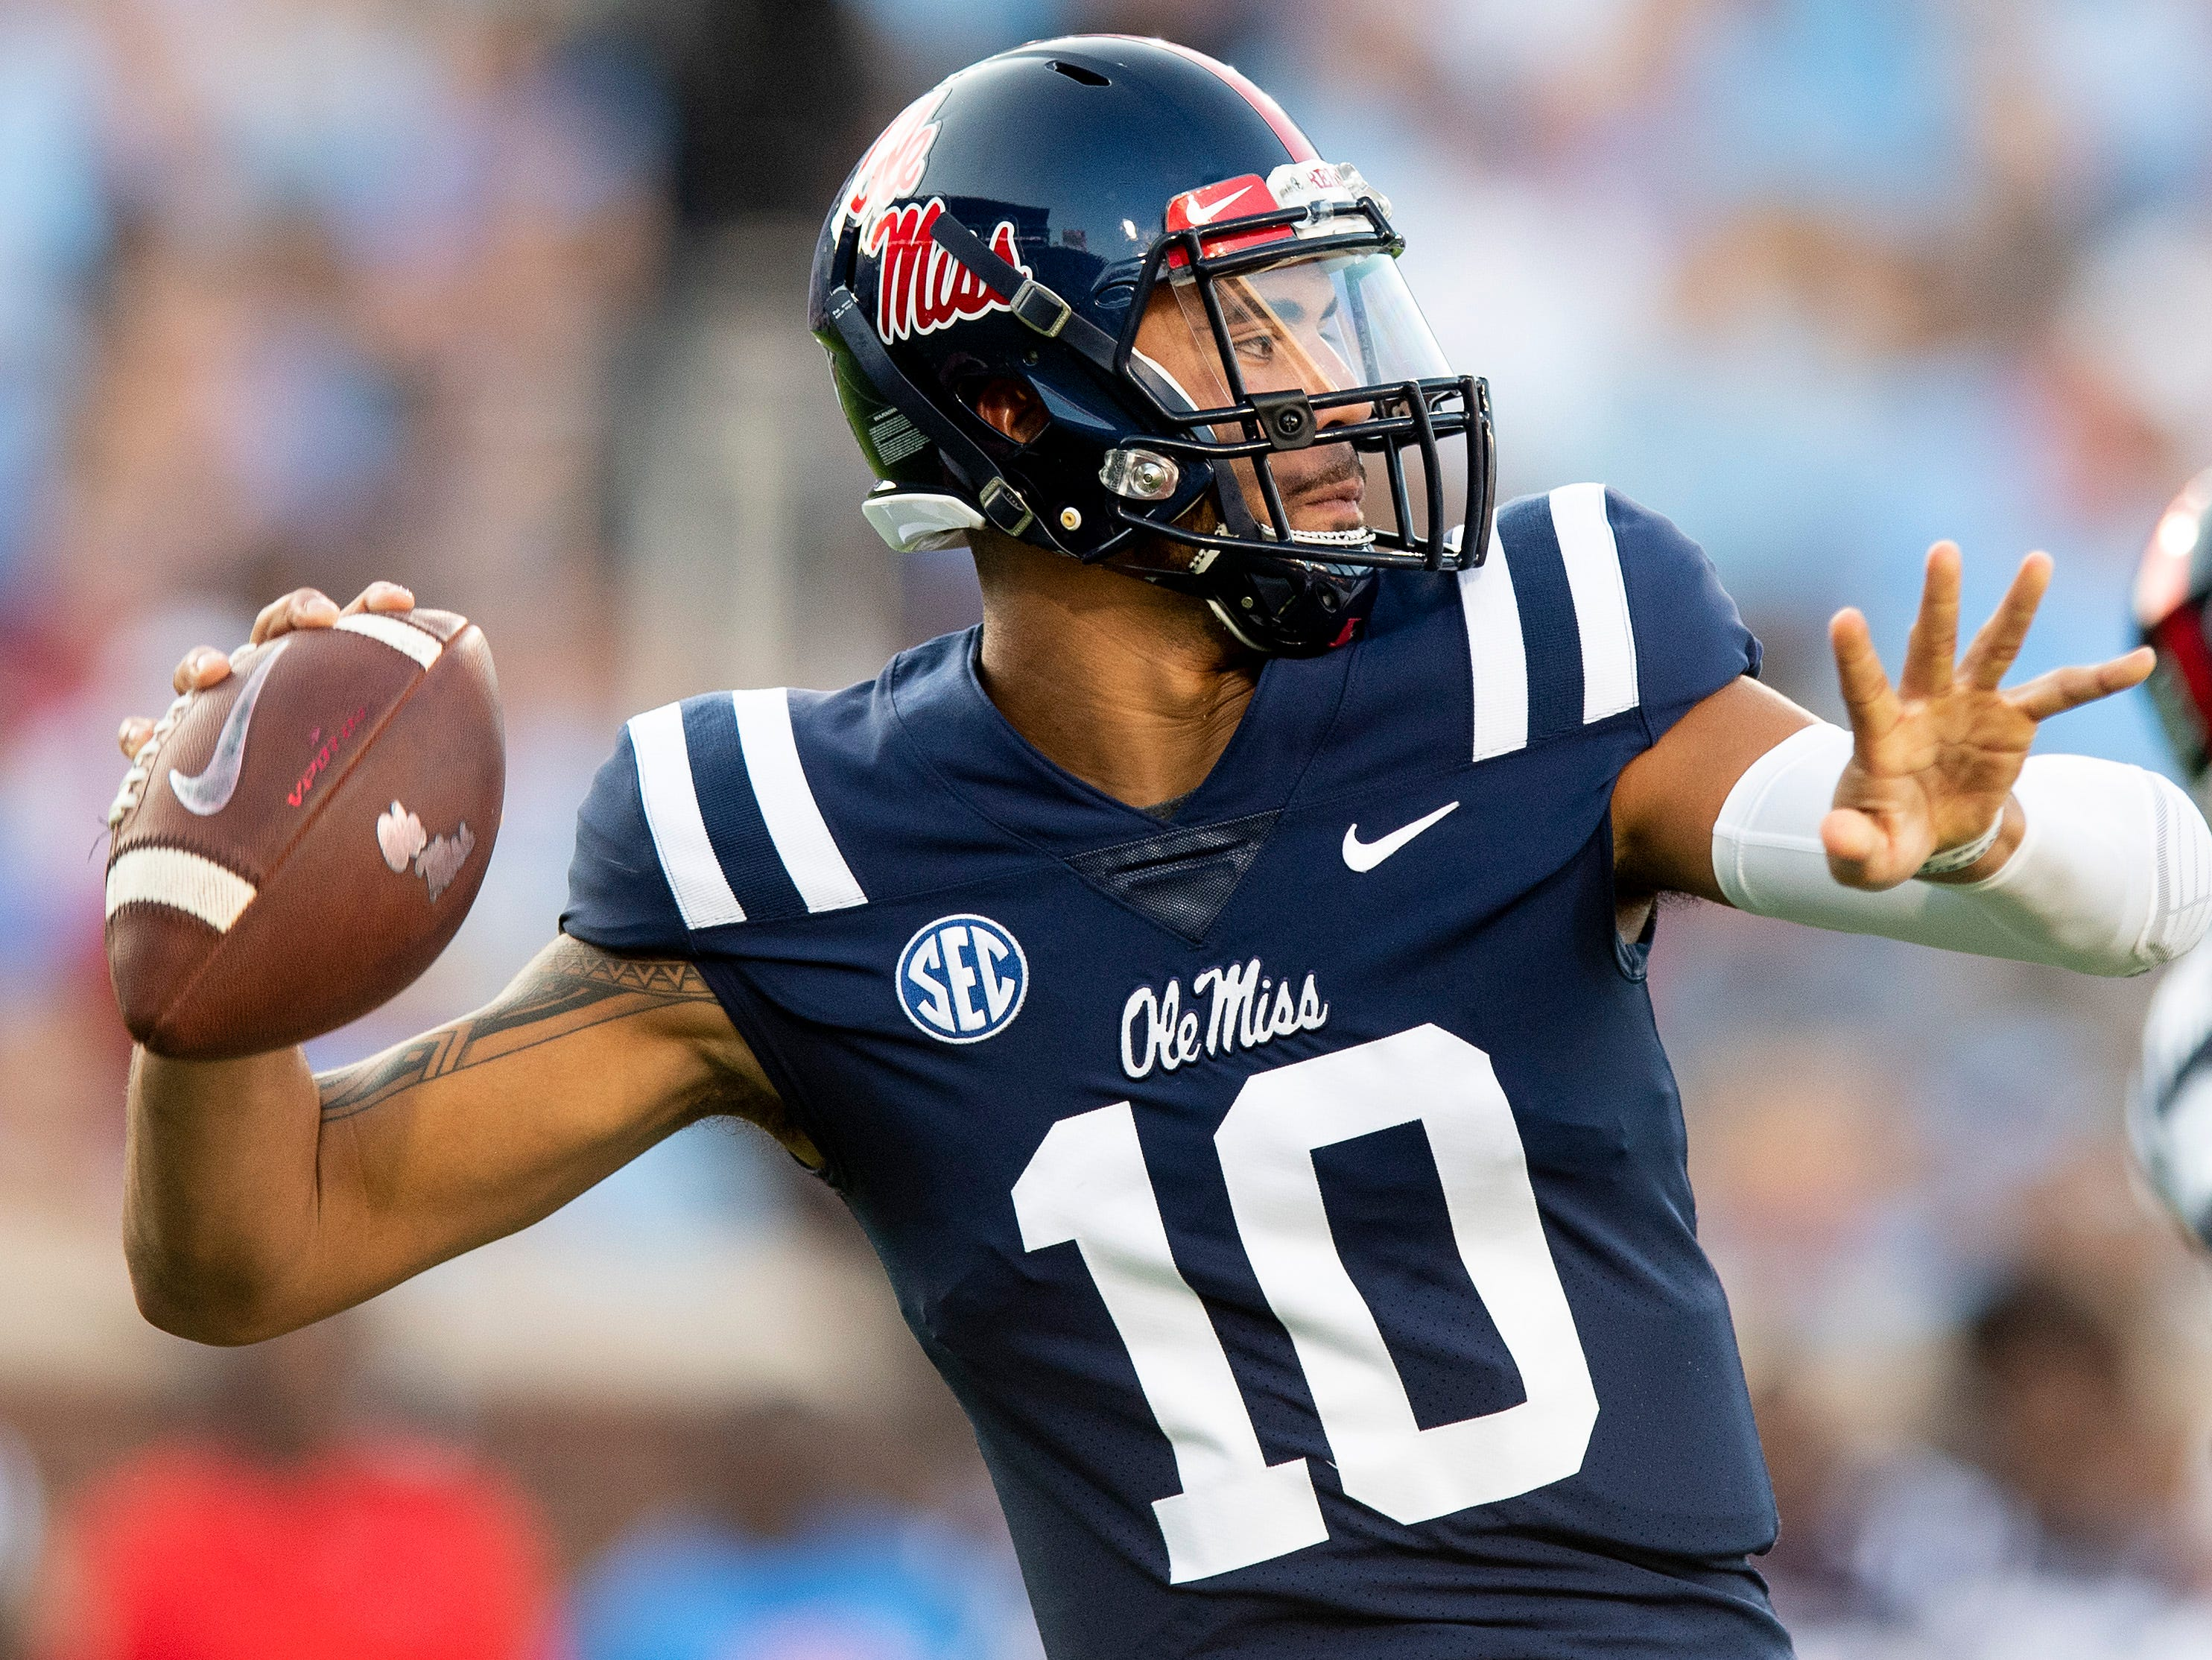 Ole Miss quarterback Jordan Ta'amu (10) throws against Alabama in first half action in Oxford, Ms., on Saturday September 15, 2018.